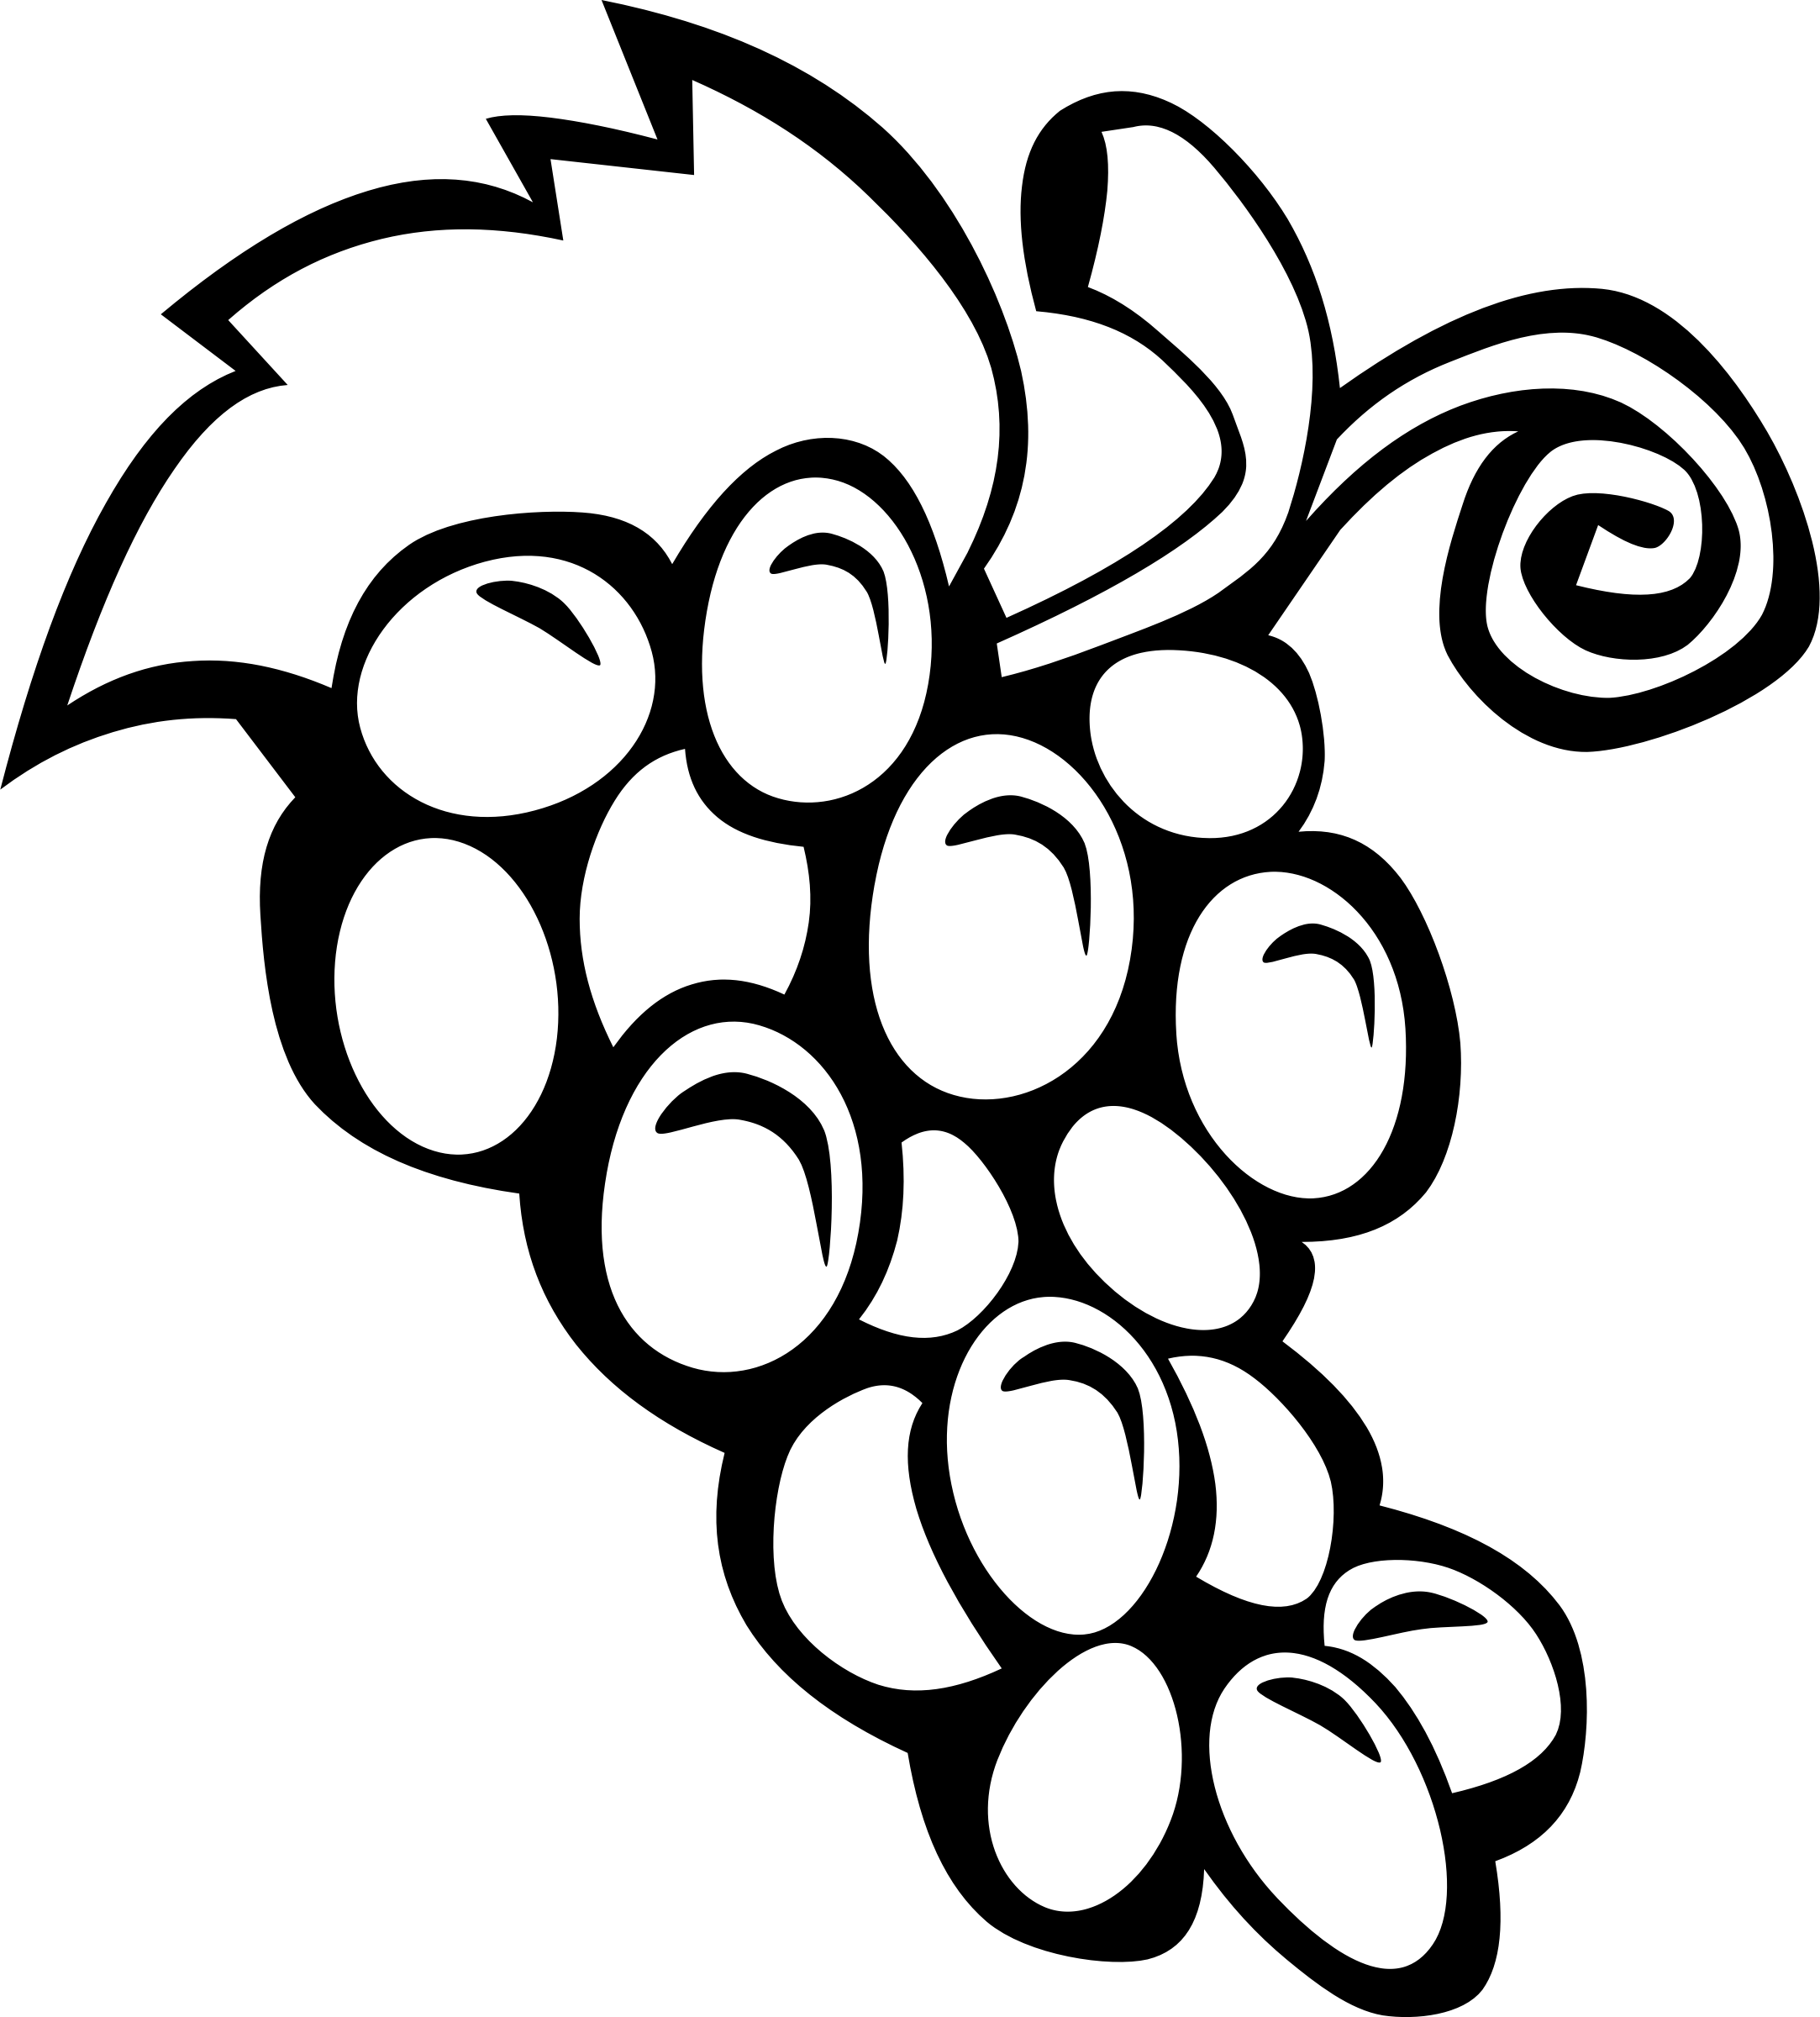 Simple grapes big image. Clipart fruit easy